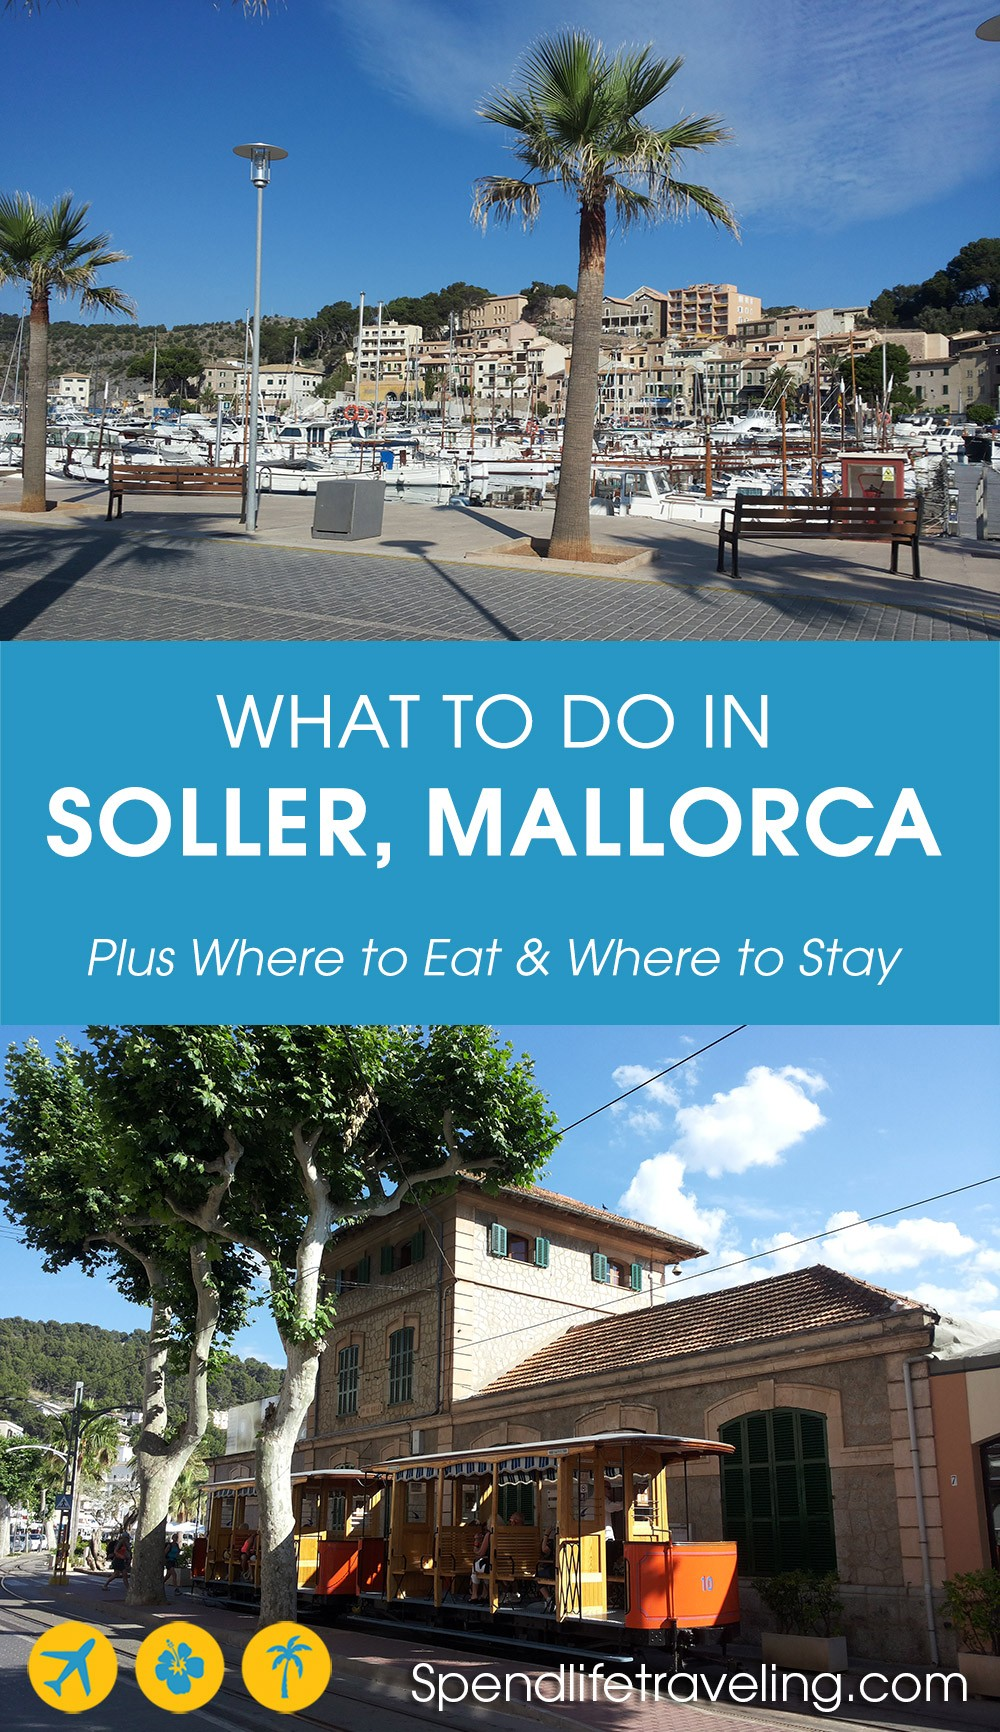 A complete travel guide with tips from an expat: things to do in #Soller, where to eat & drink and where to stay. #PortdeSoller #Mallorca